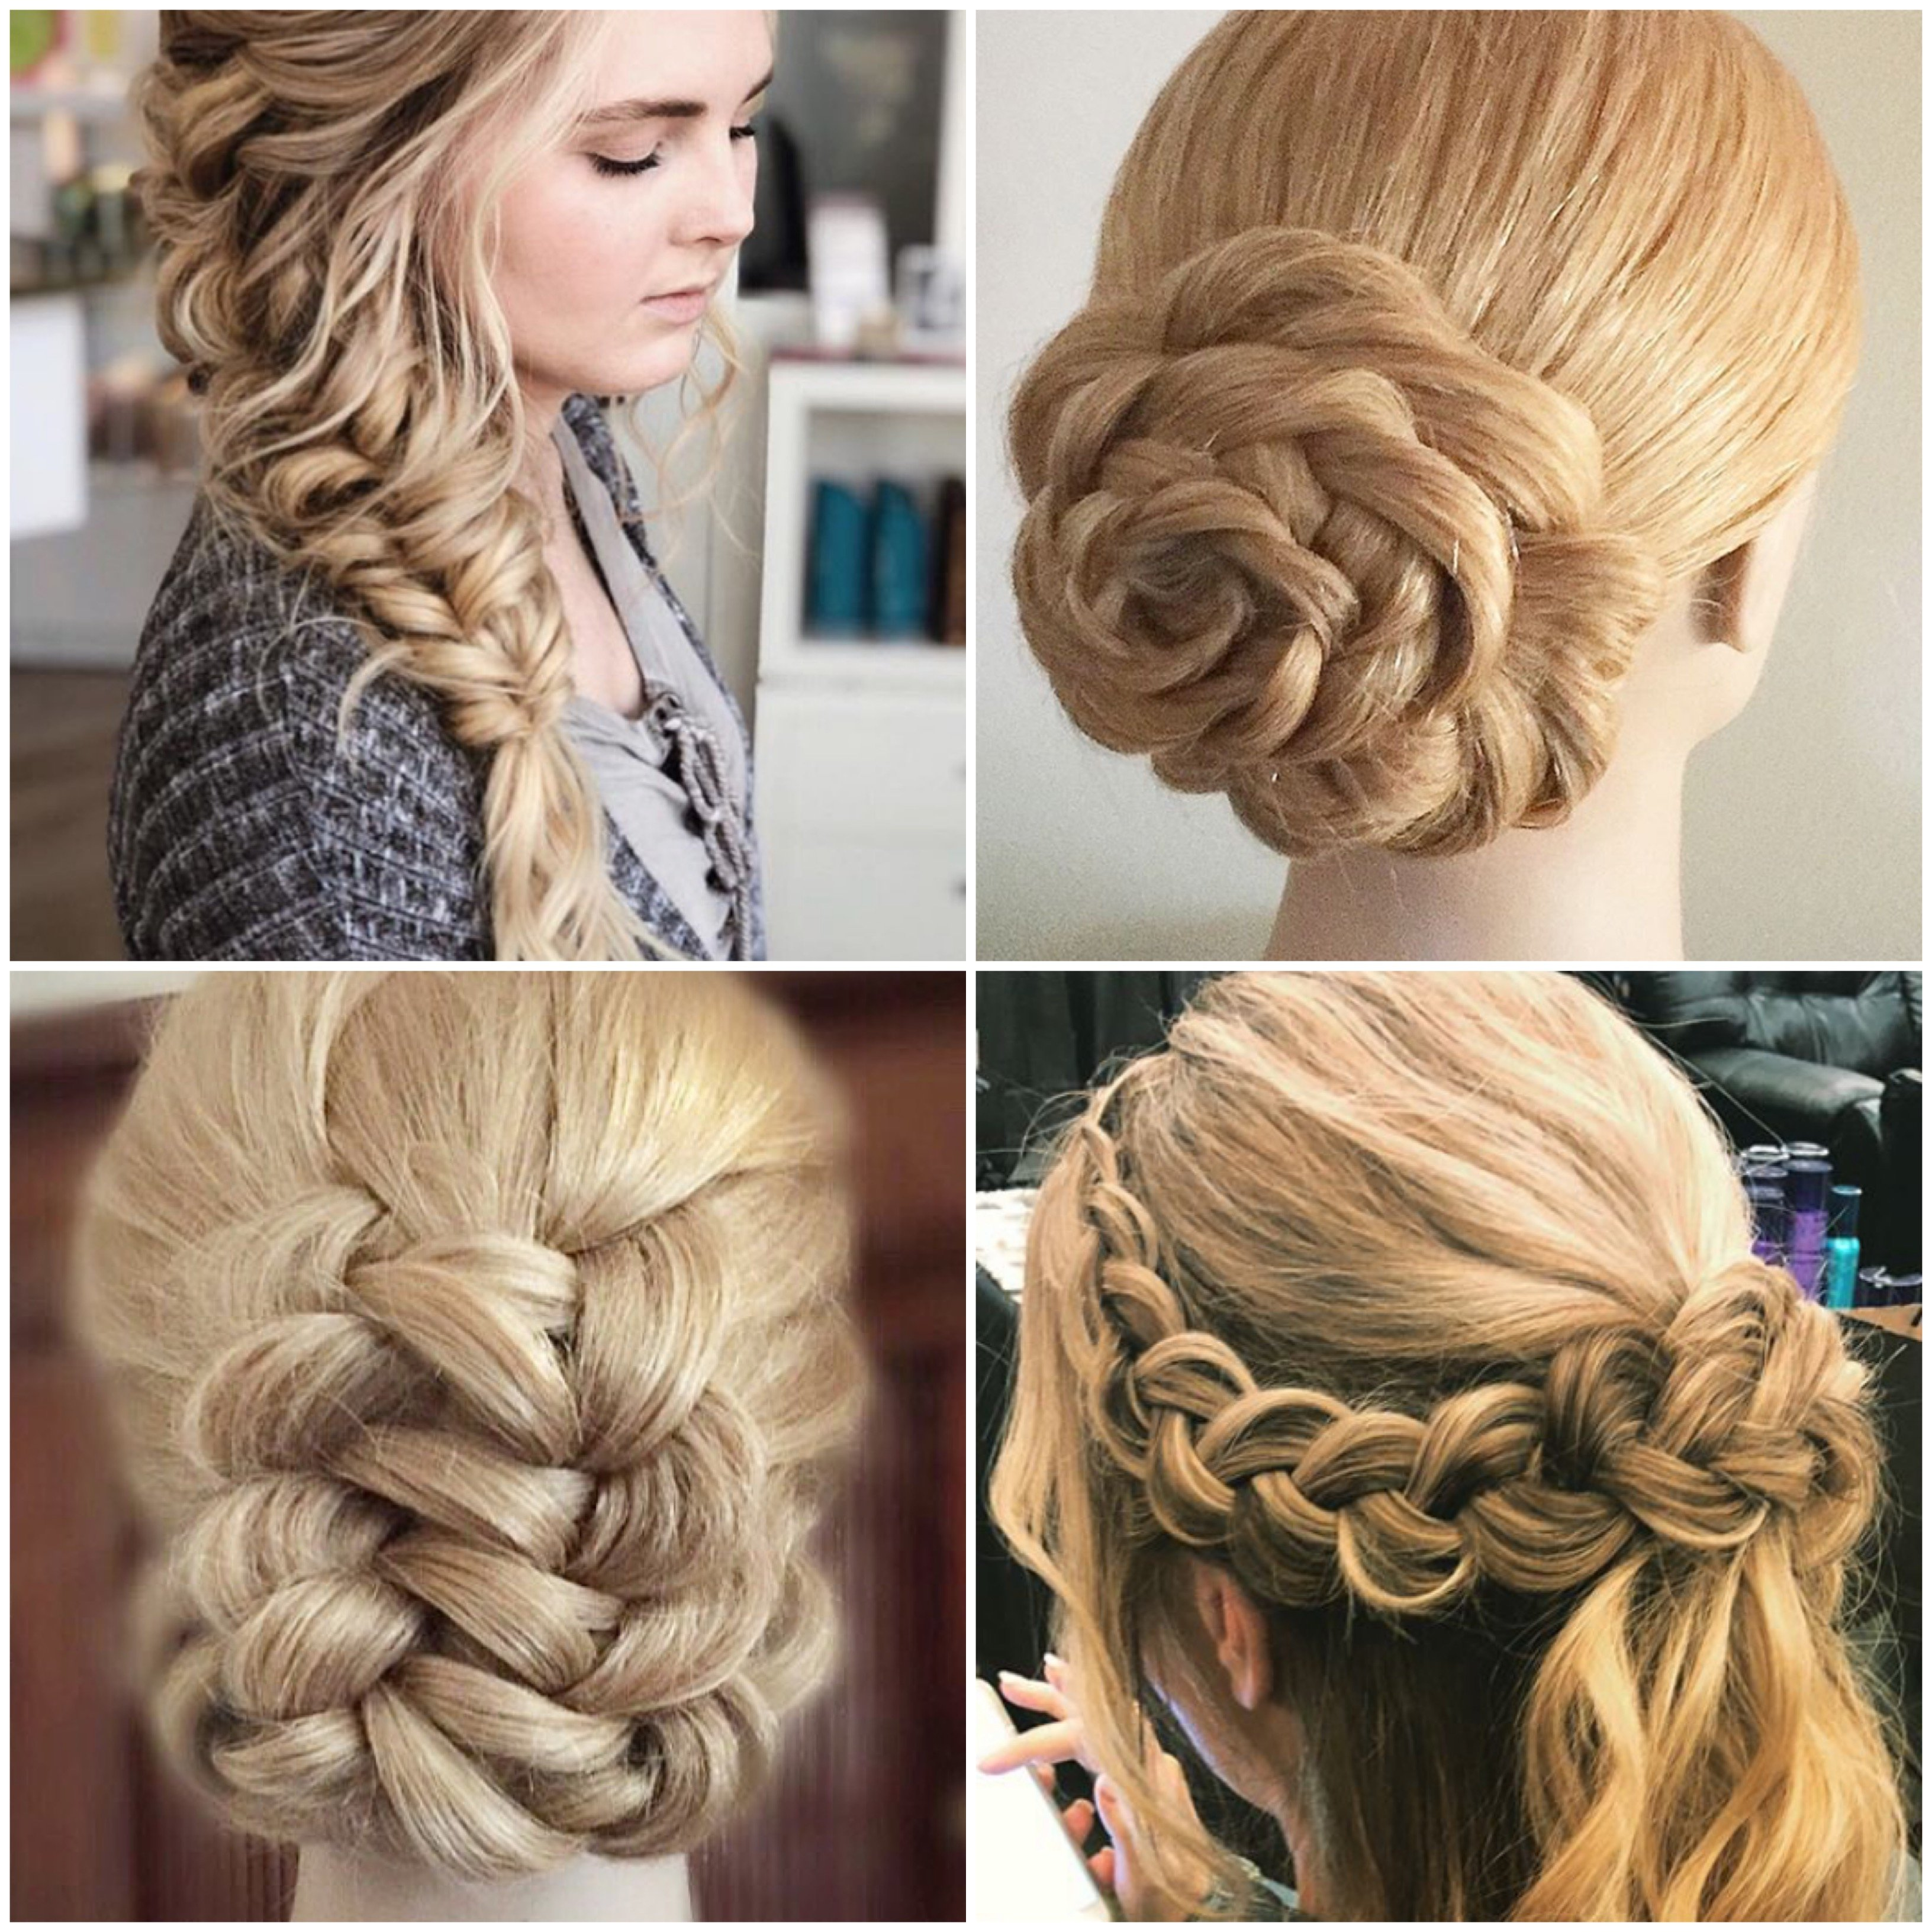 Braids by Sarah Crews.